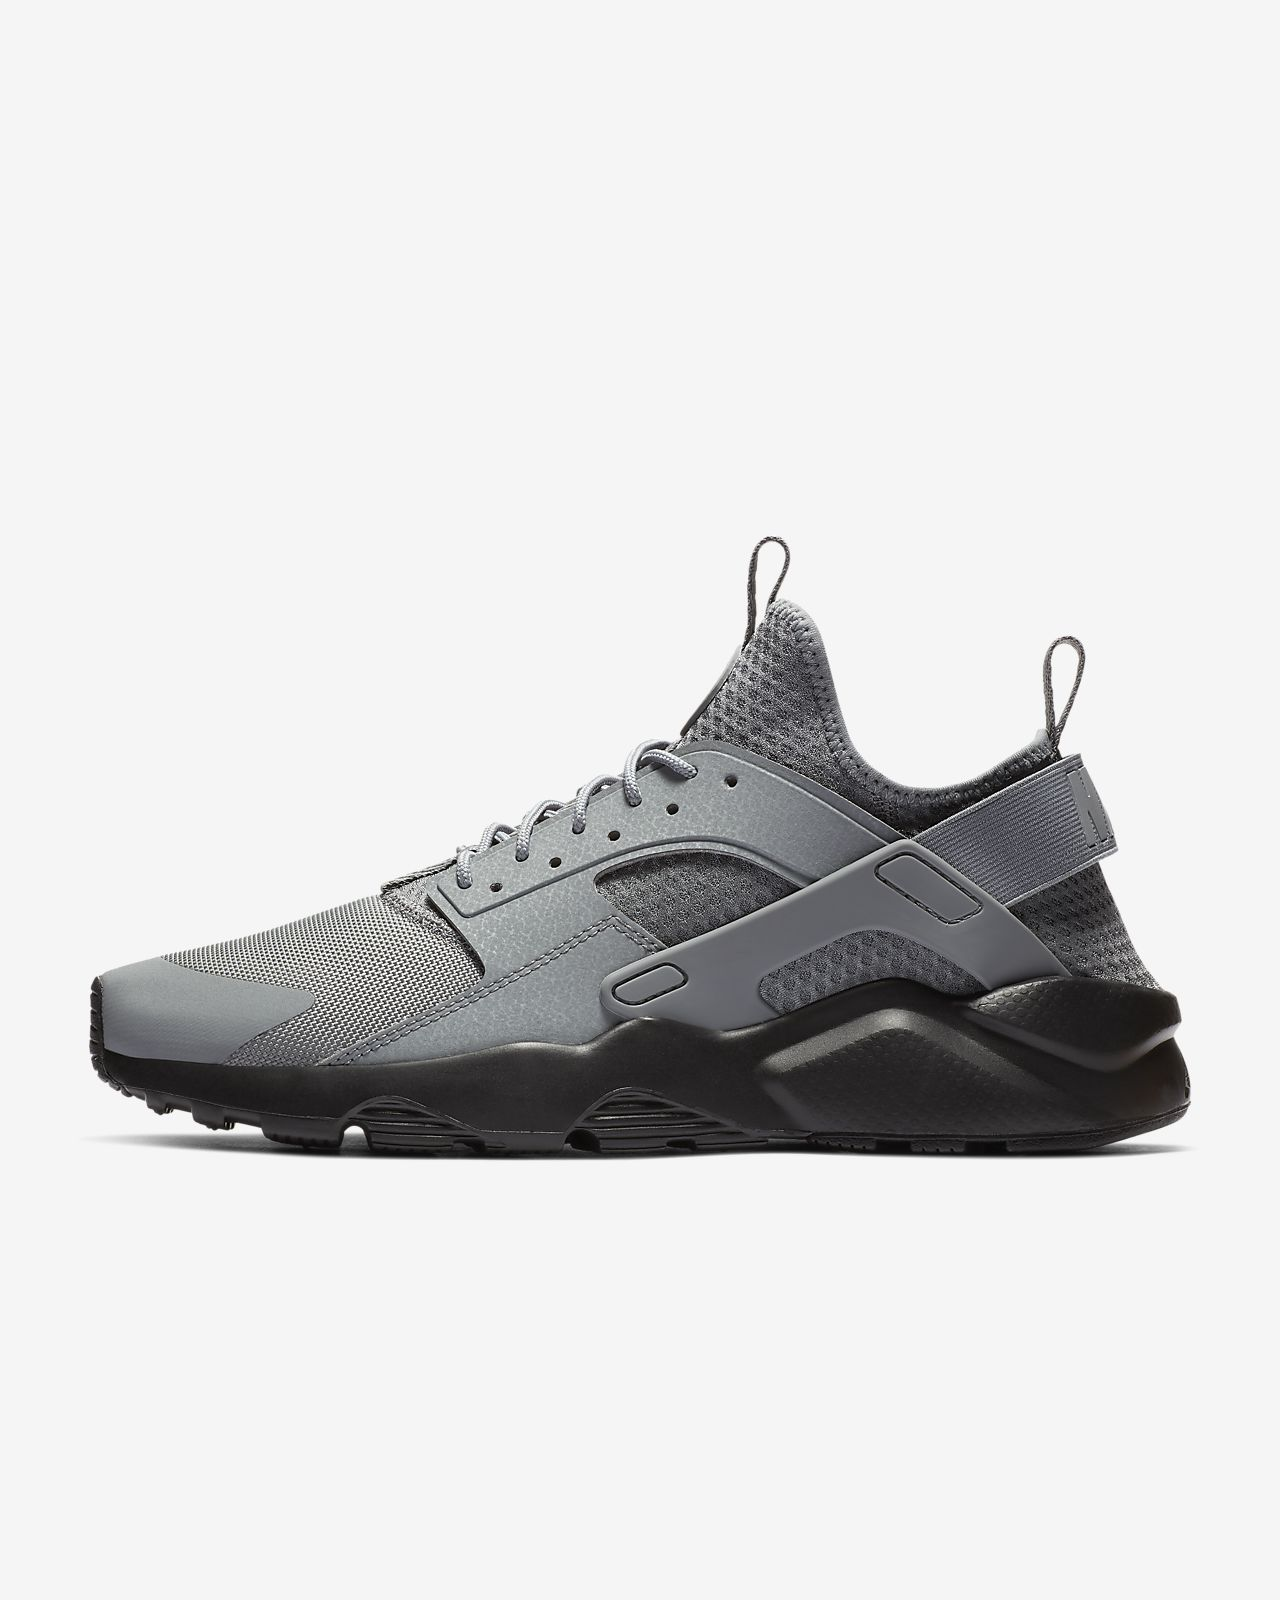 premium selection f90d6 6d803 Calzado para hombre Nike Air Huarache Run Ultra